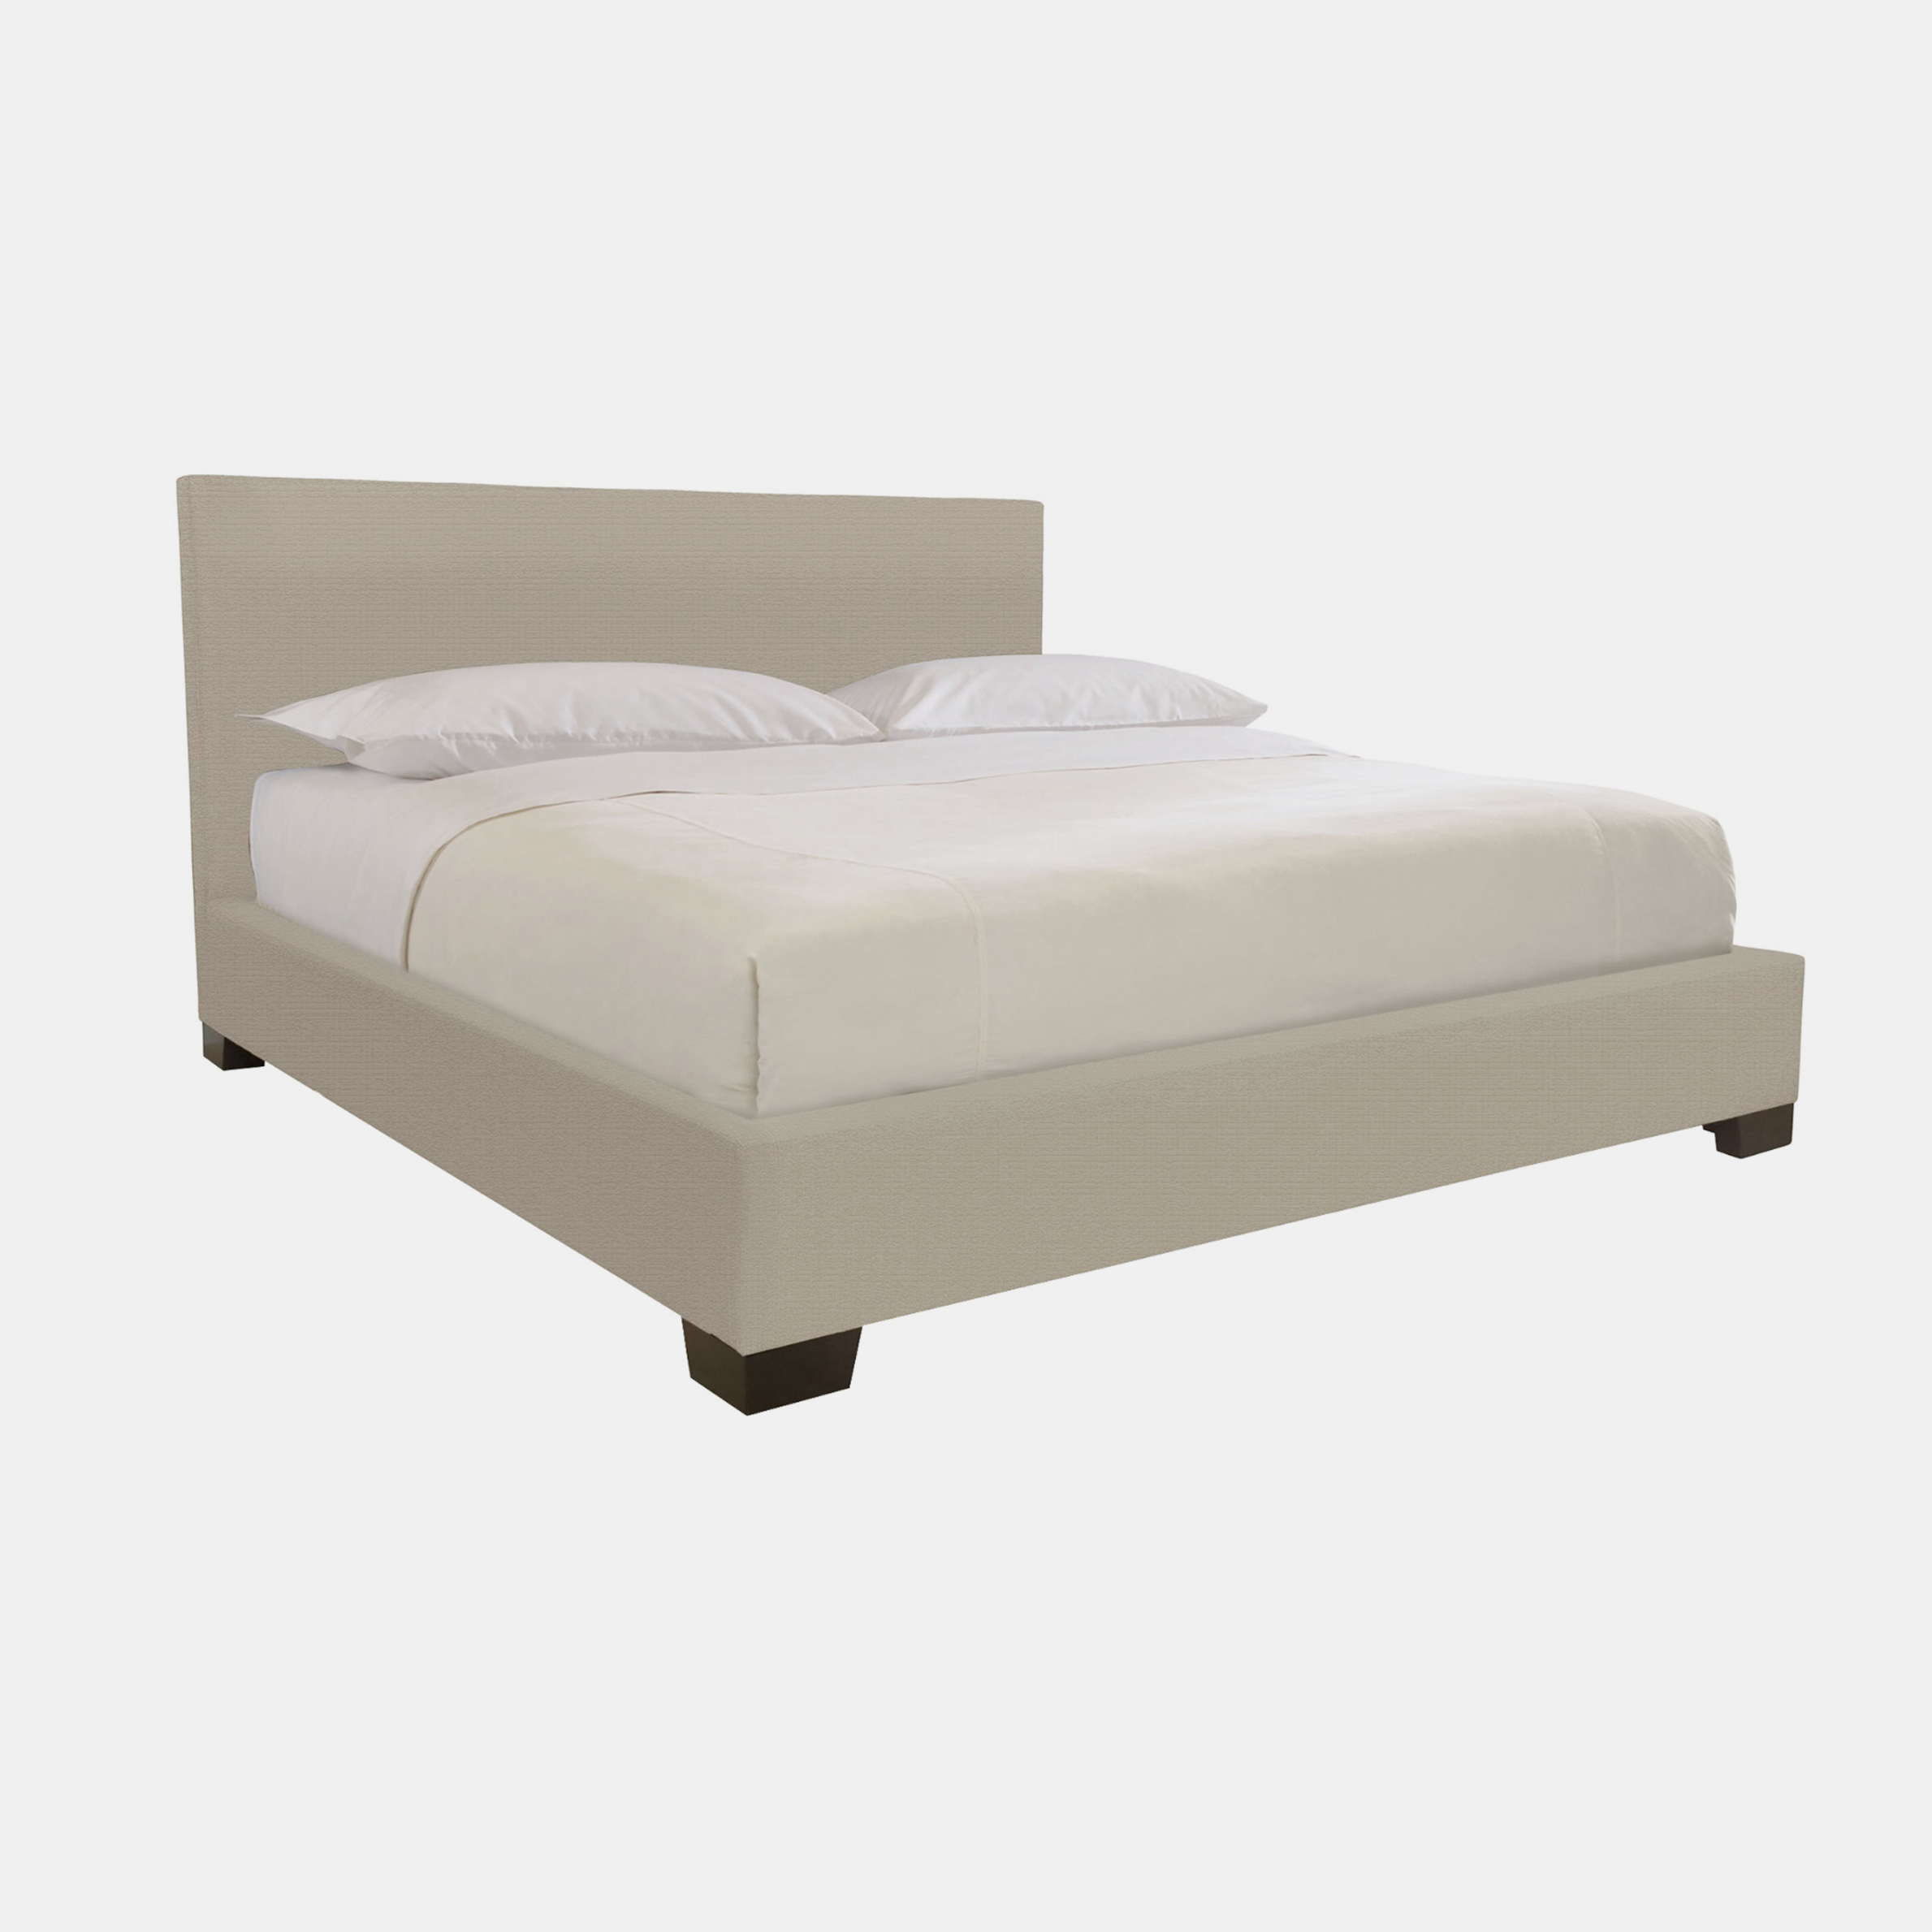 "Pryce Bed  66-1/2""w x 88-1/2""l x 46""h (queen) Available in queen, california king, and eastern king. Also available as headboard. SKU2498BHT"